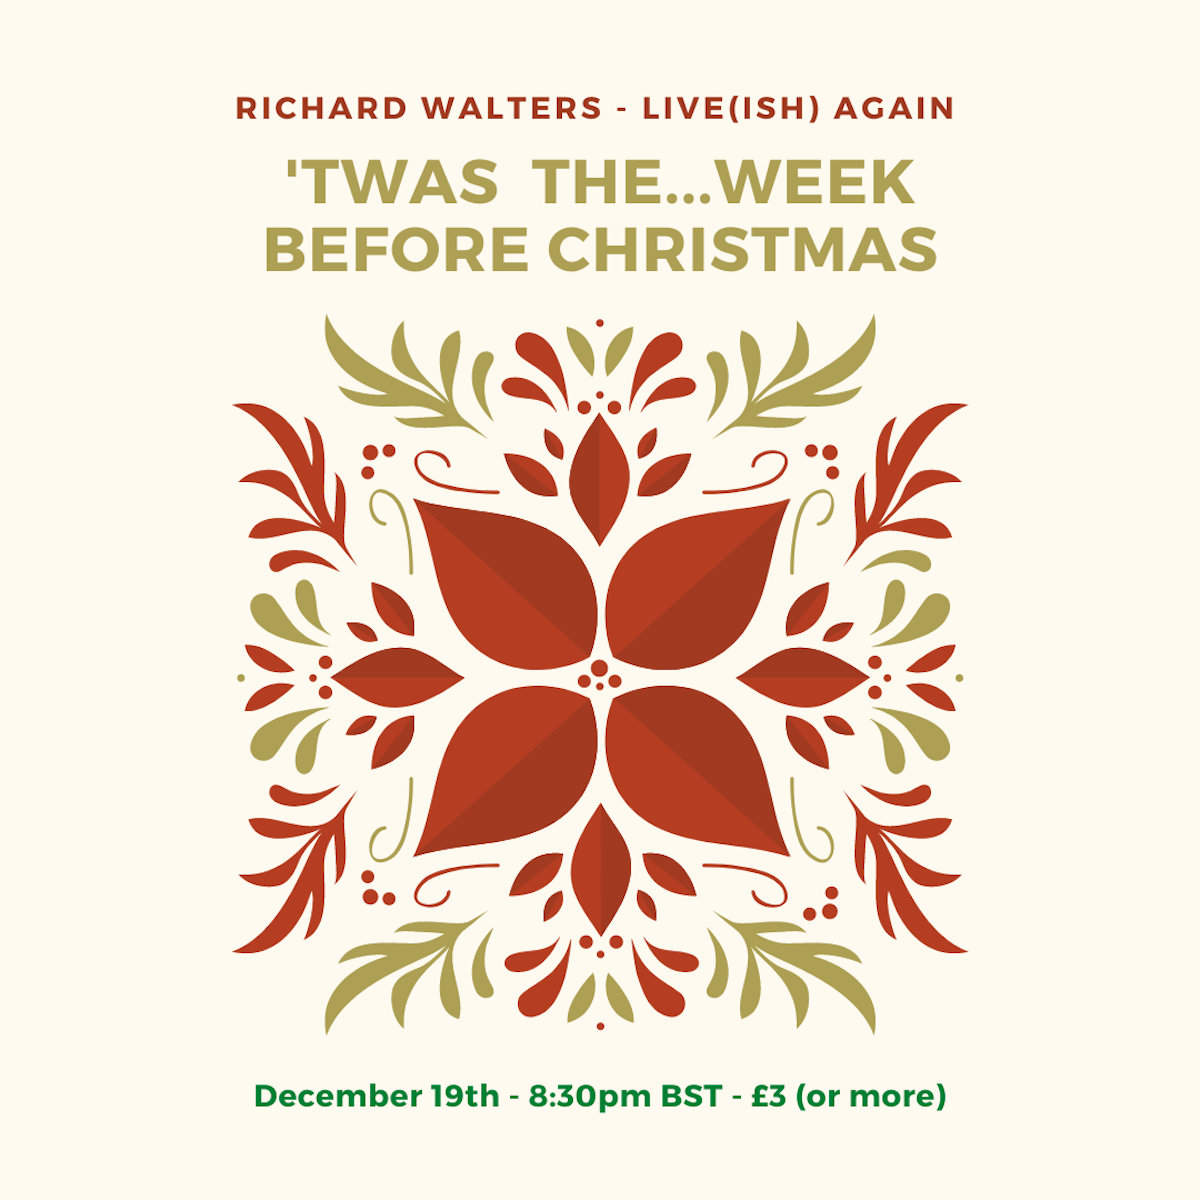 Christmas Concerts Near Me December 19th 2020 Richard Walters: Live(ish) Christmas Concert   Sat 19th Dec 2020